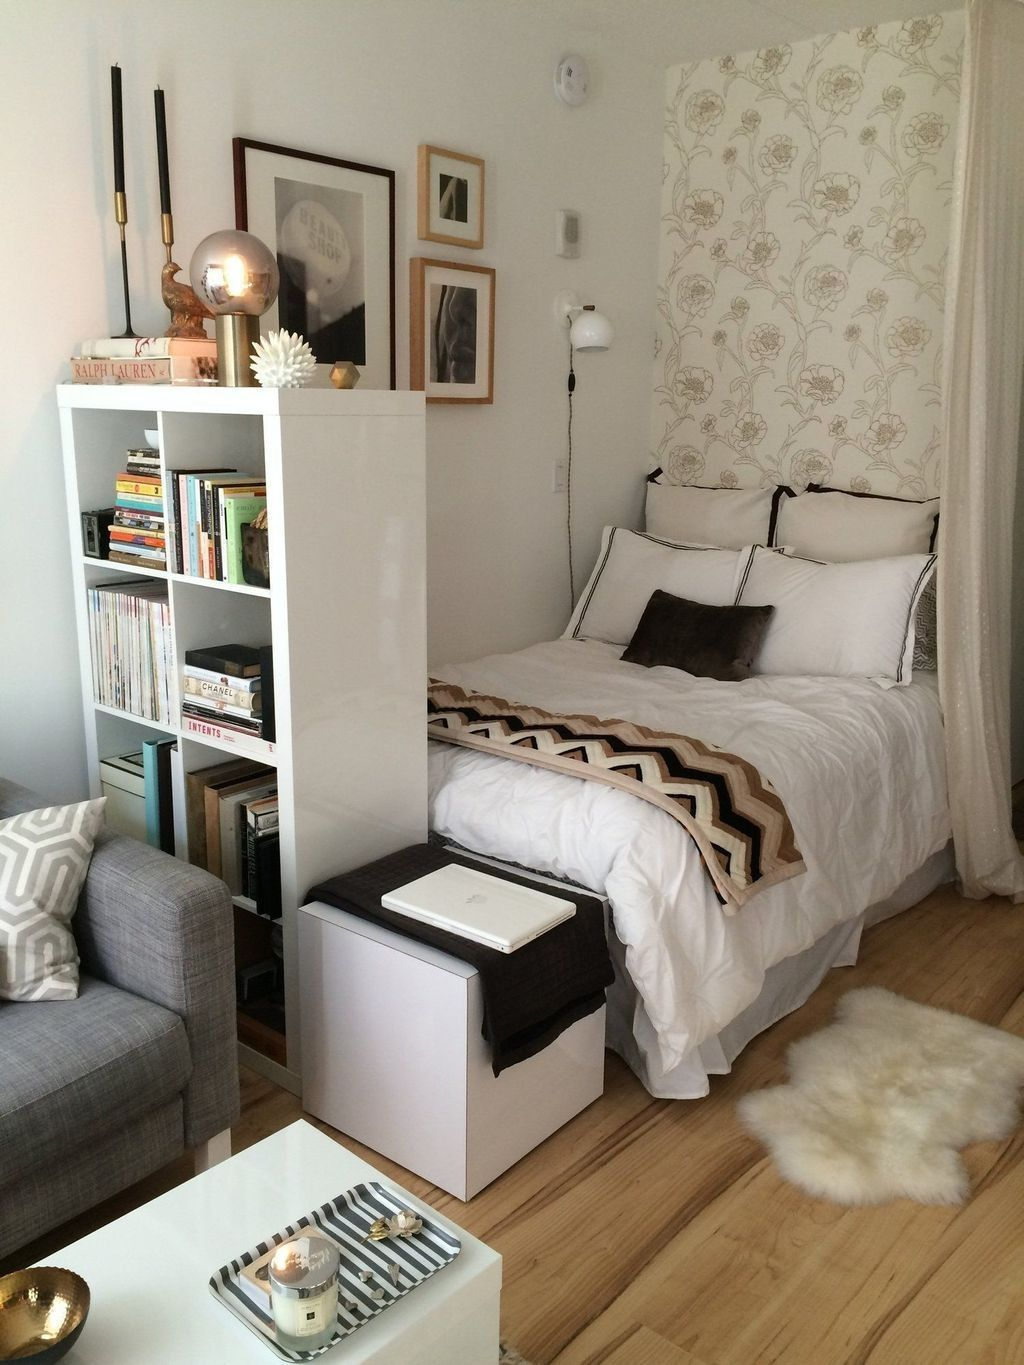 Admirable Small Bedroom Decor Ideas You Never Seen Before 15